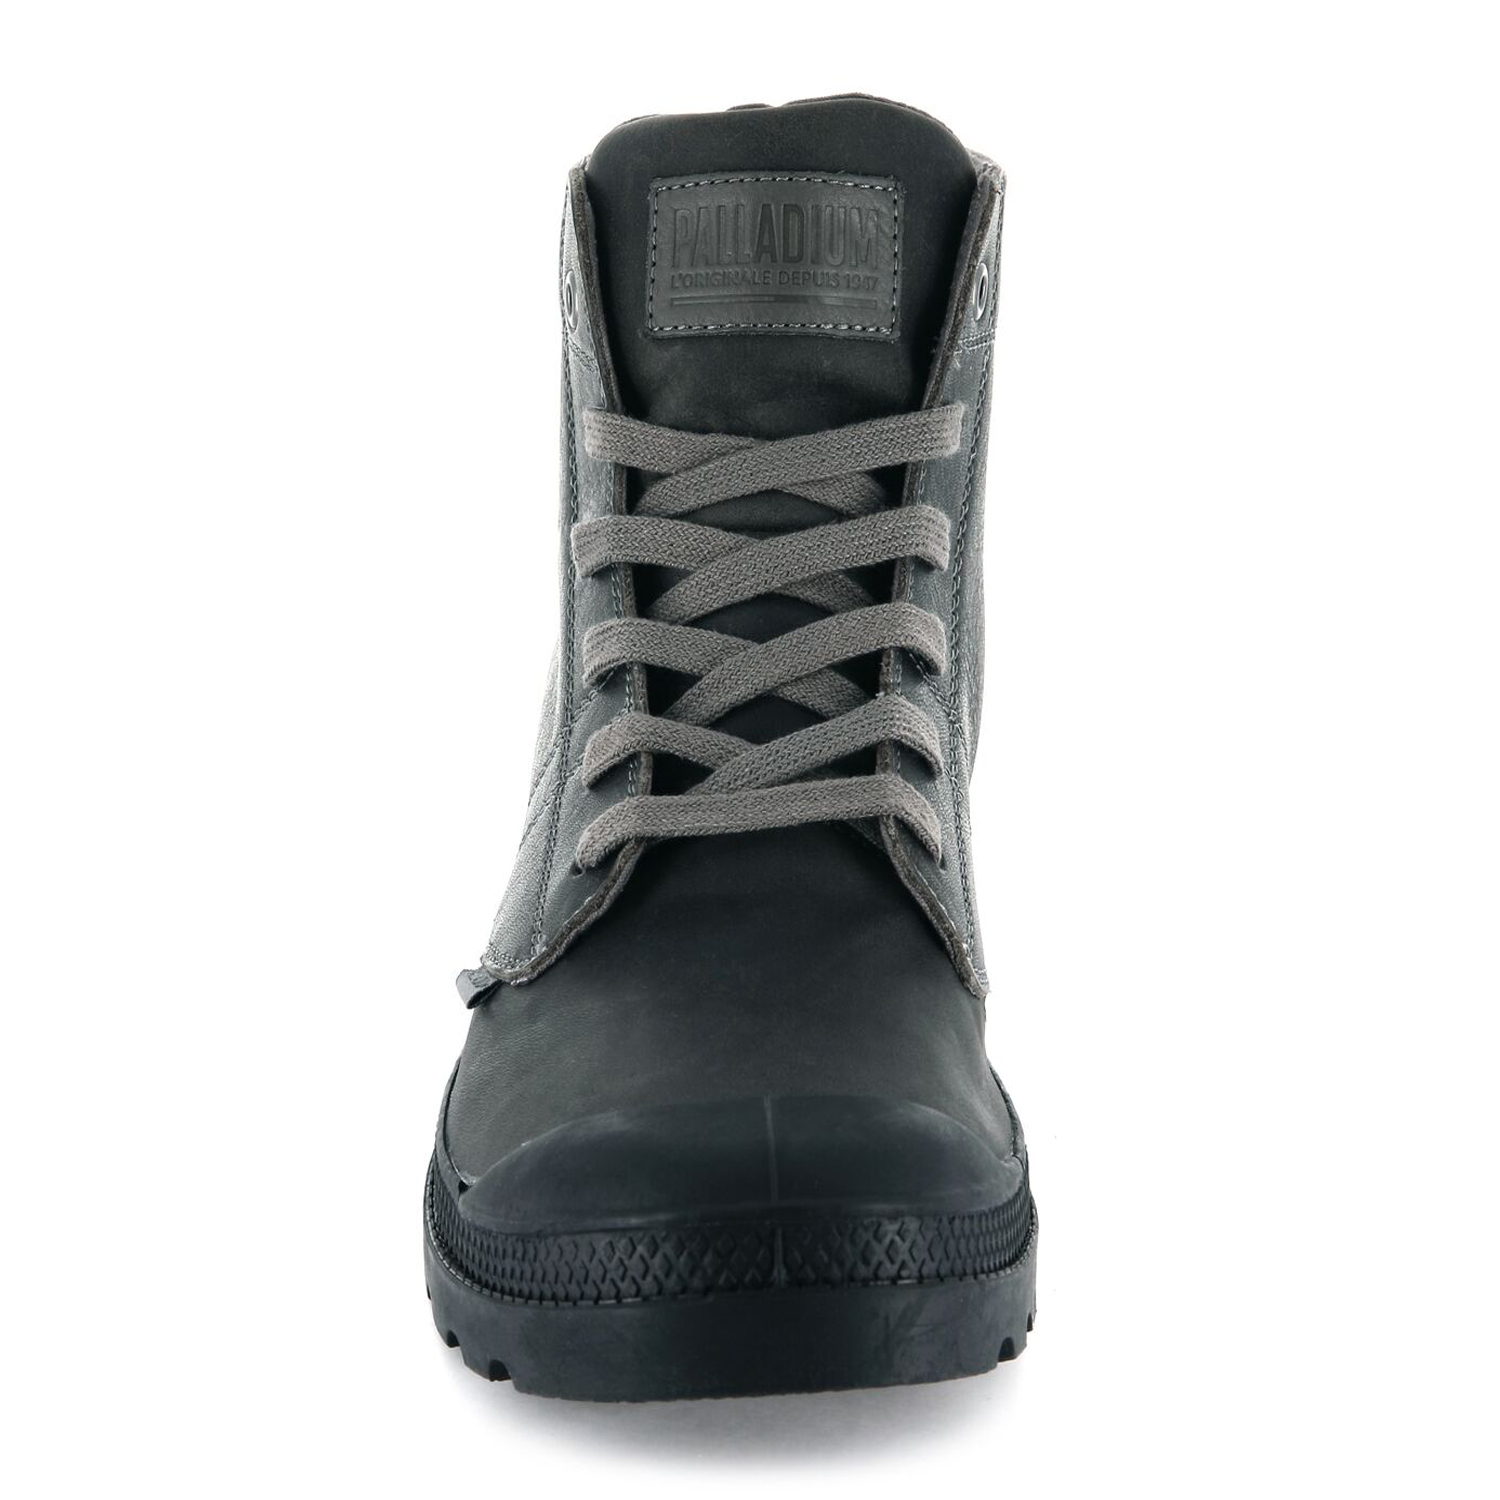 Palladium-Mens-Pallabrousse-Leather-Lace-Up-Boots-Walking-Chukka-Ankle-Shoes thumbnail 10